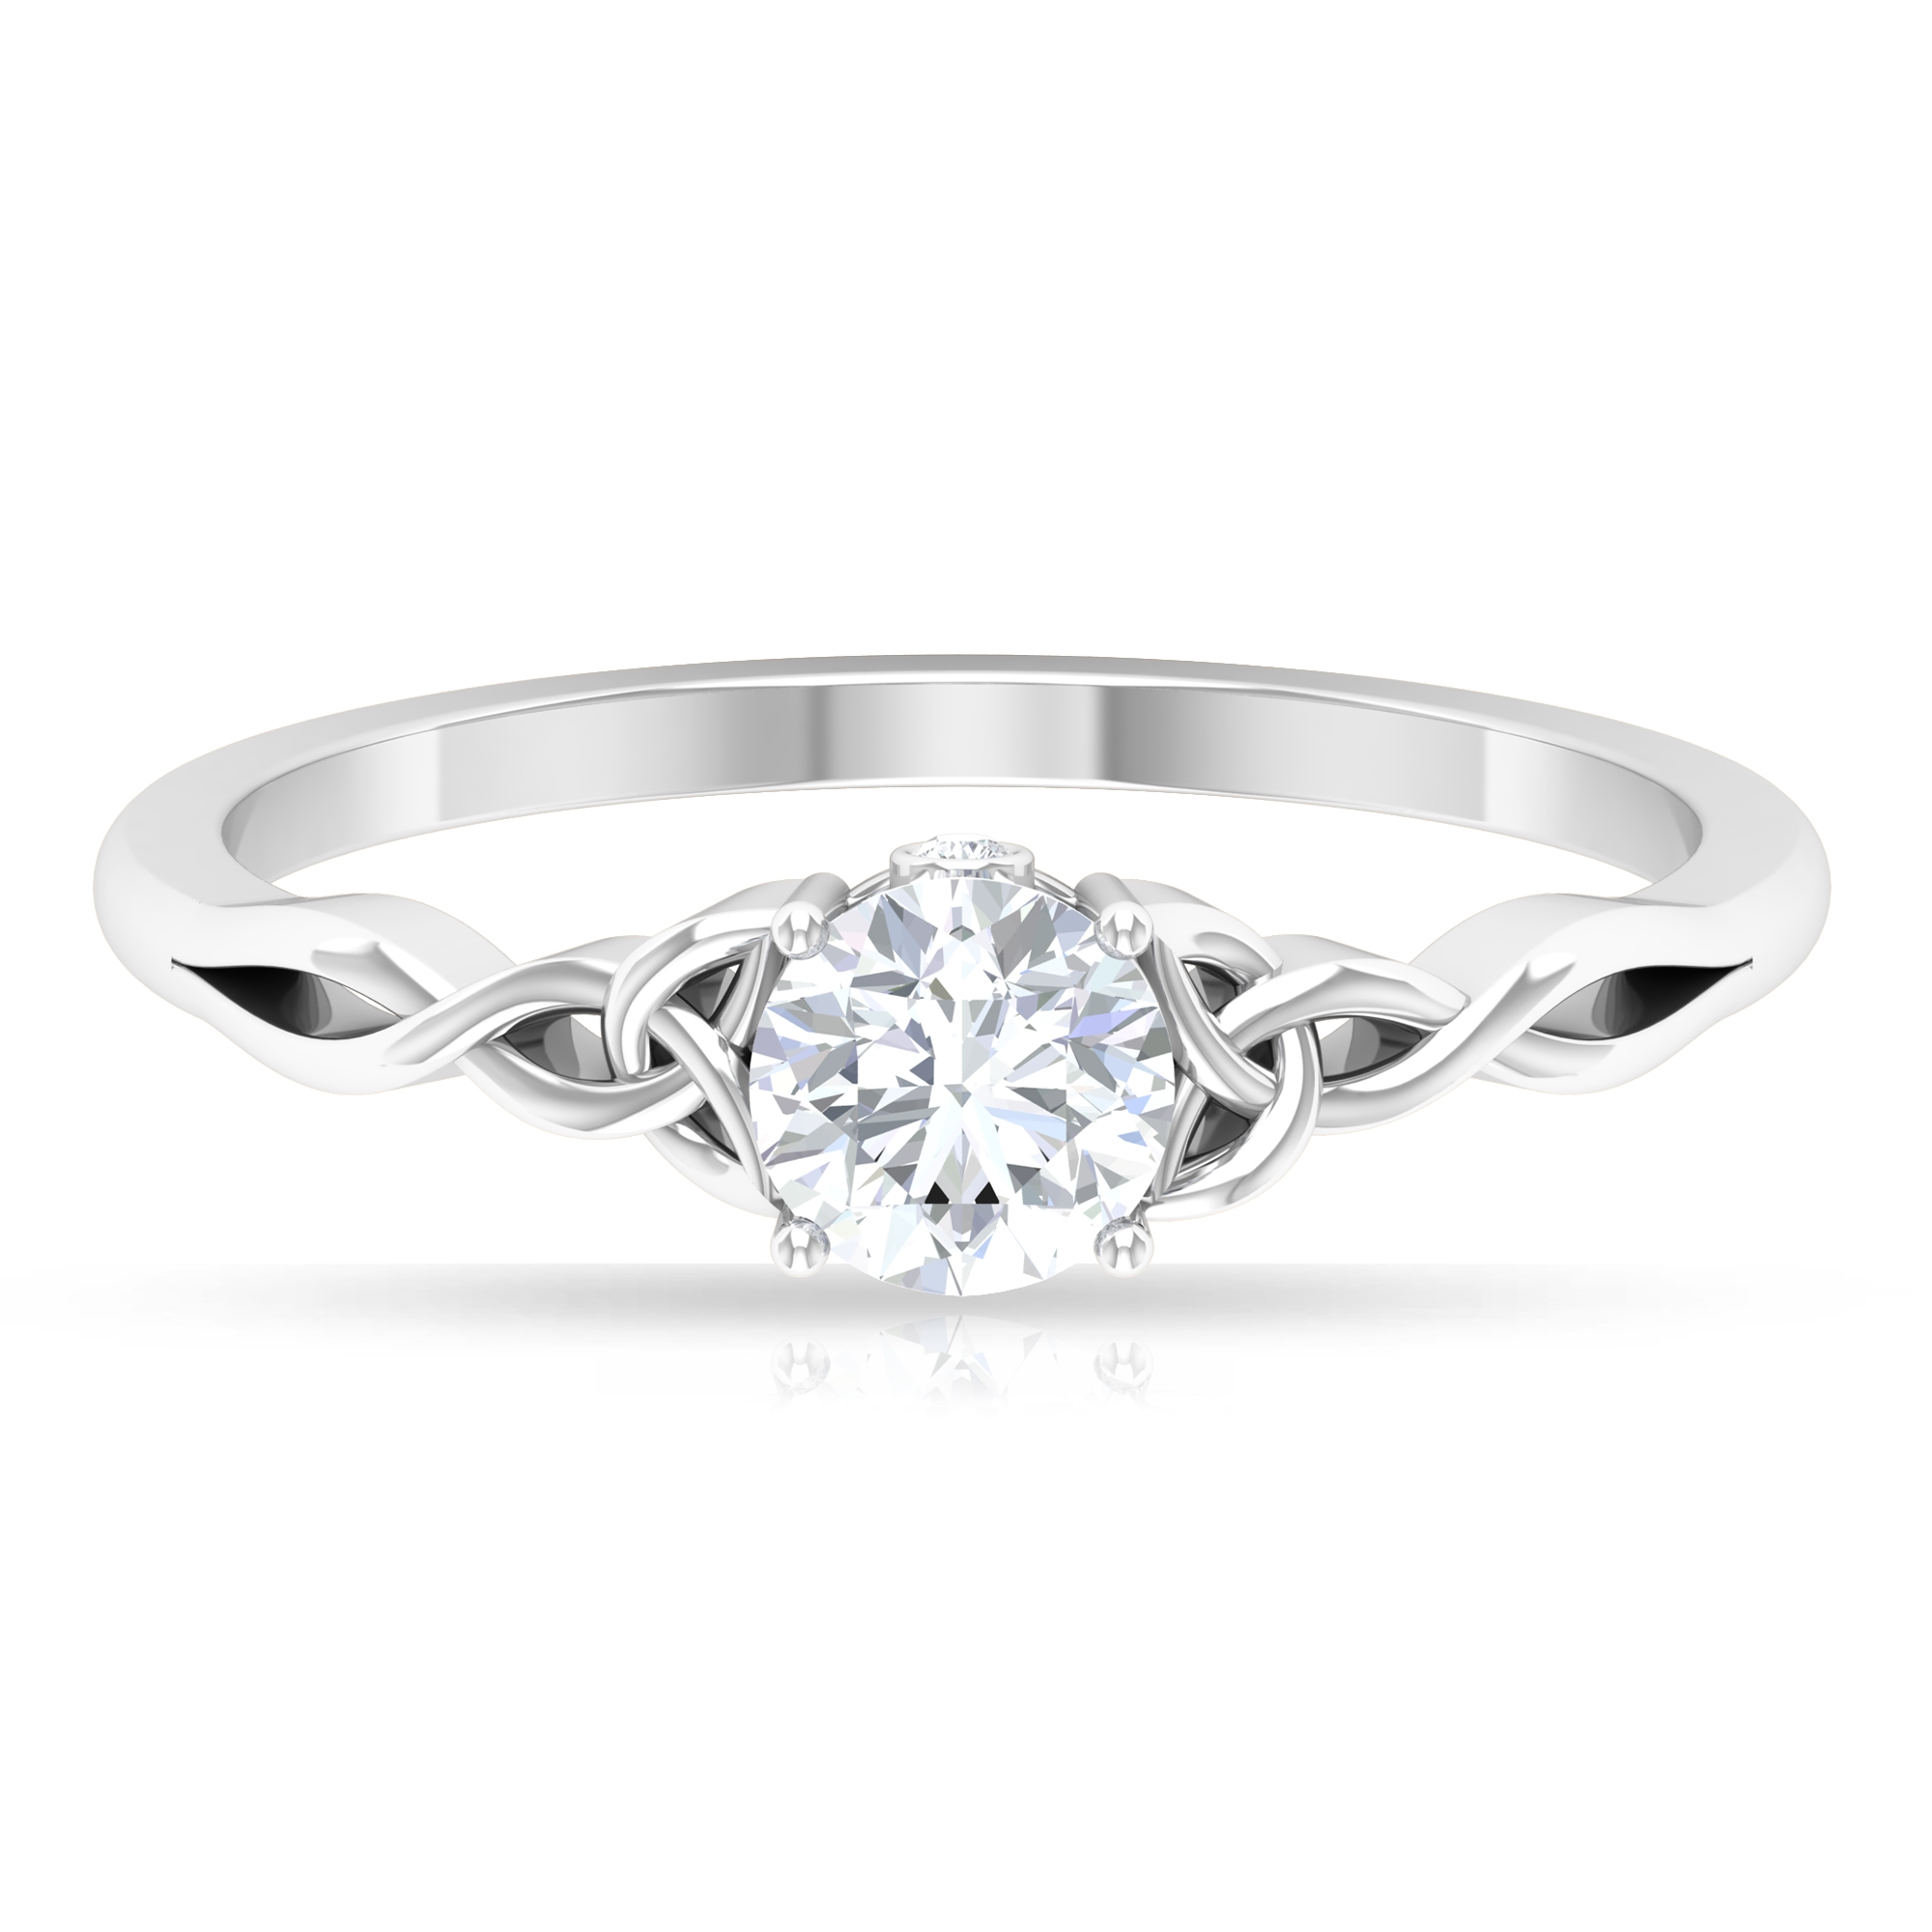 1/2 CT Round Cut Diamond Solitaire Ring in Prong Setting with Surprise Style and Celtic Details